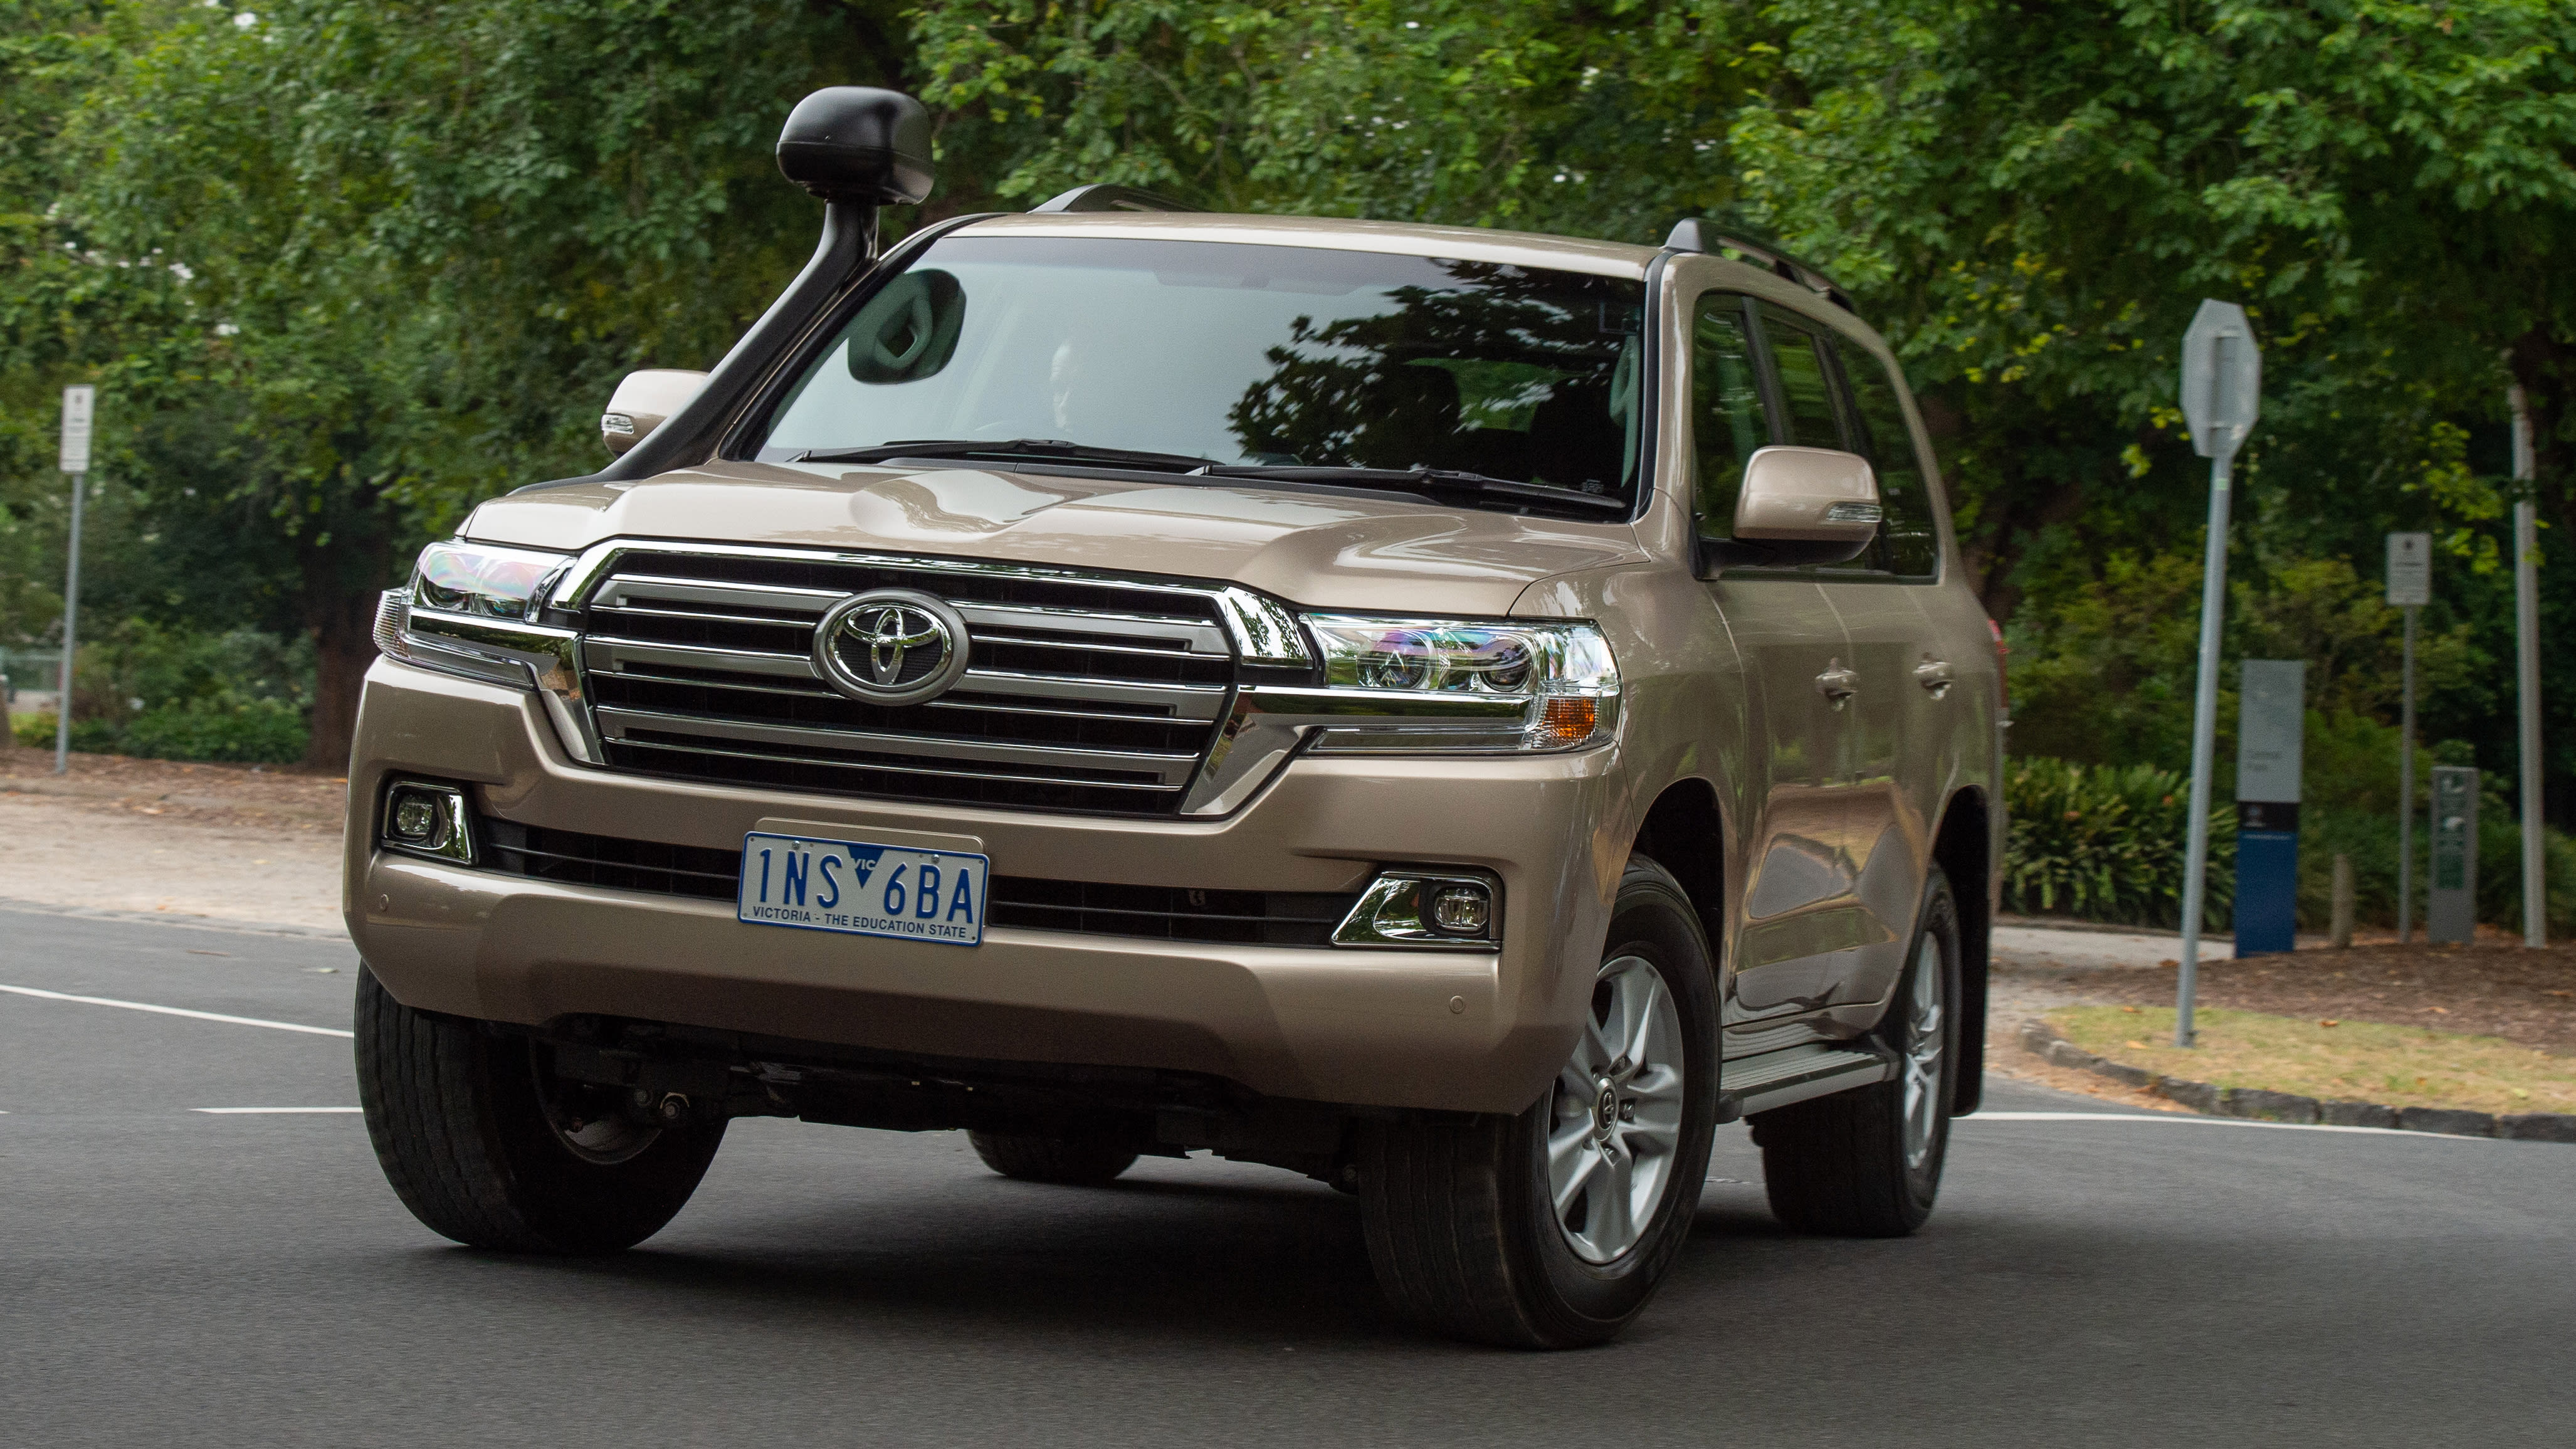 Toyota LandCruiser 300 Series at least two years away | CarAdvice